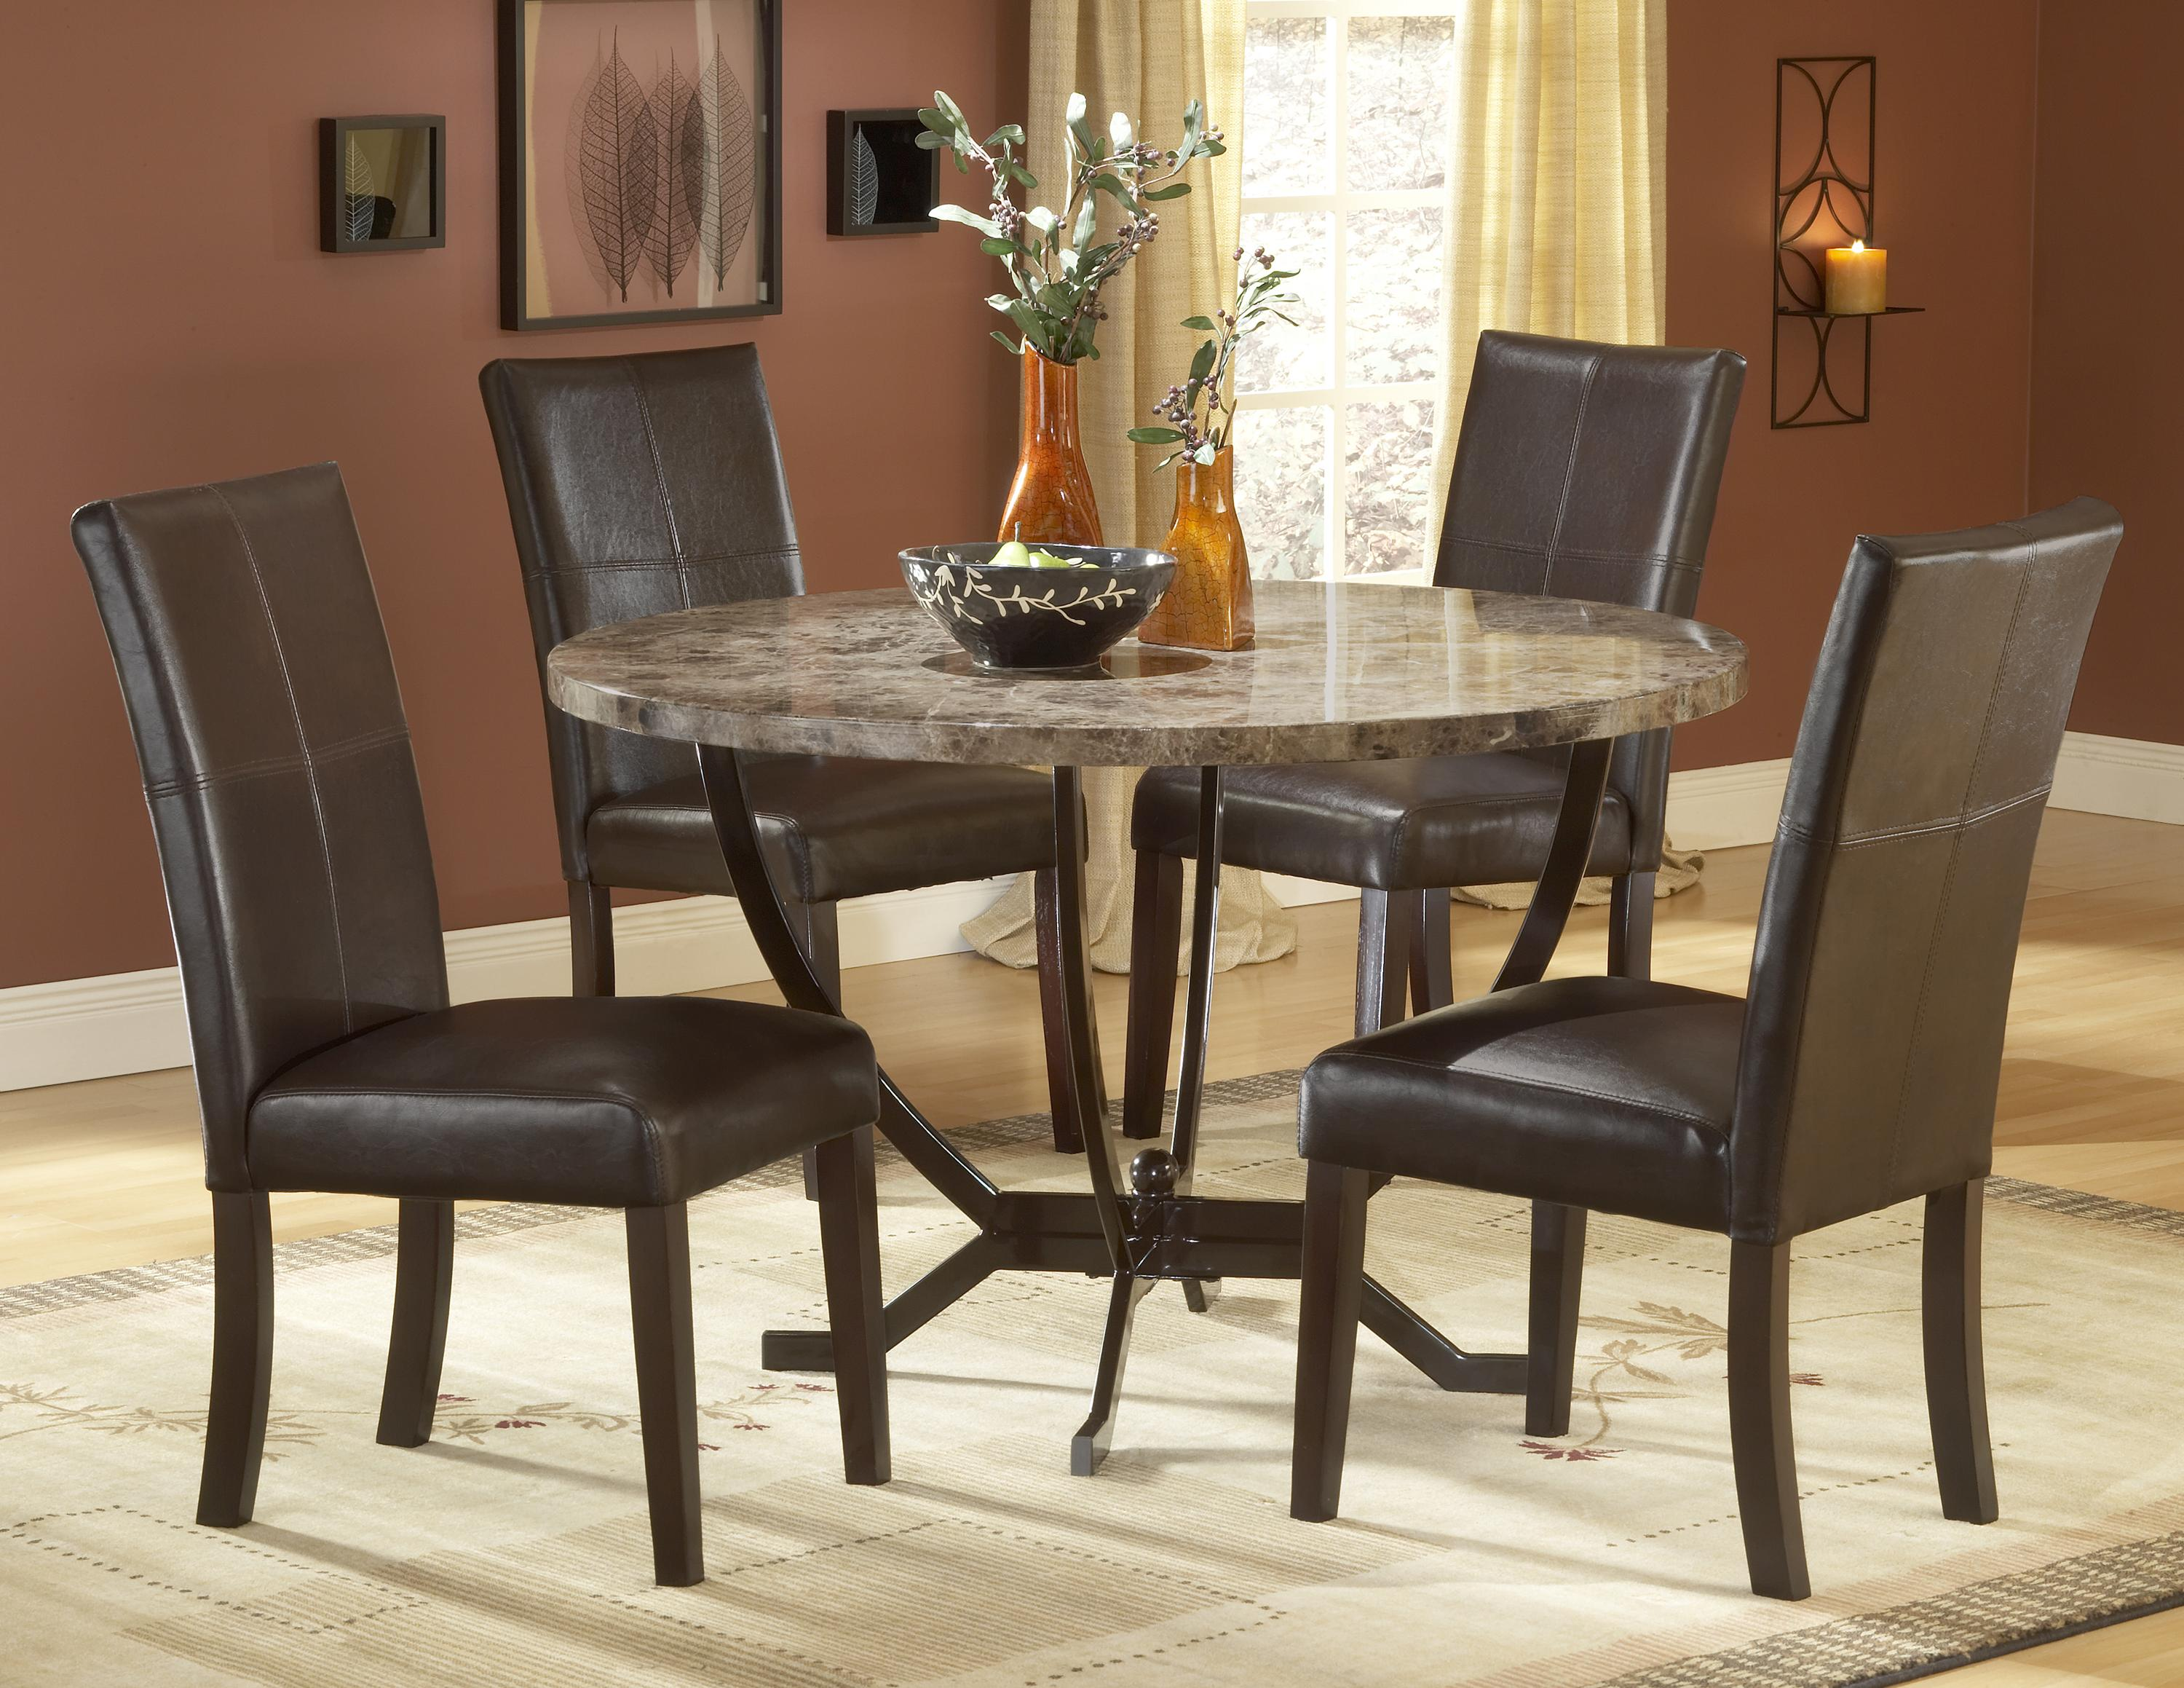 Small dinette set design homesfeed for Designer dinette sets